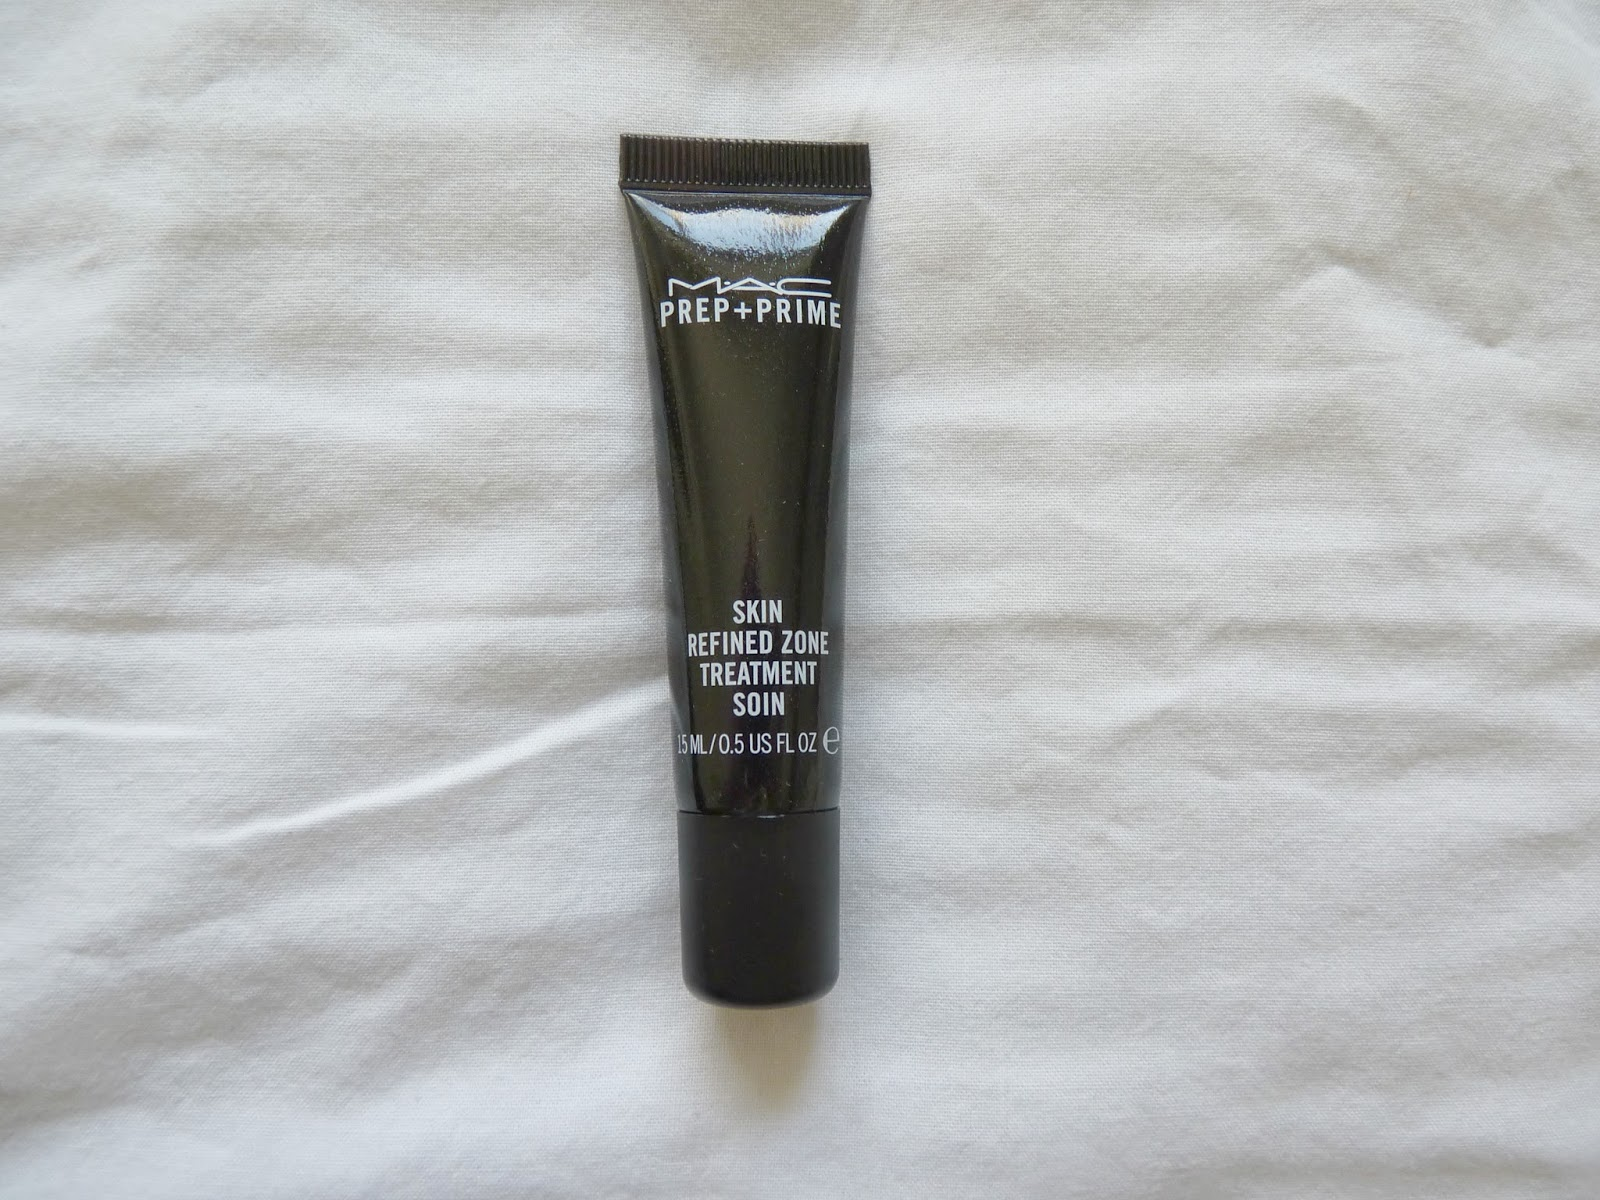 MAC Prep + Prime Skin Refined Zone Primer Treatment Oily Skin Matte